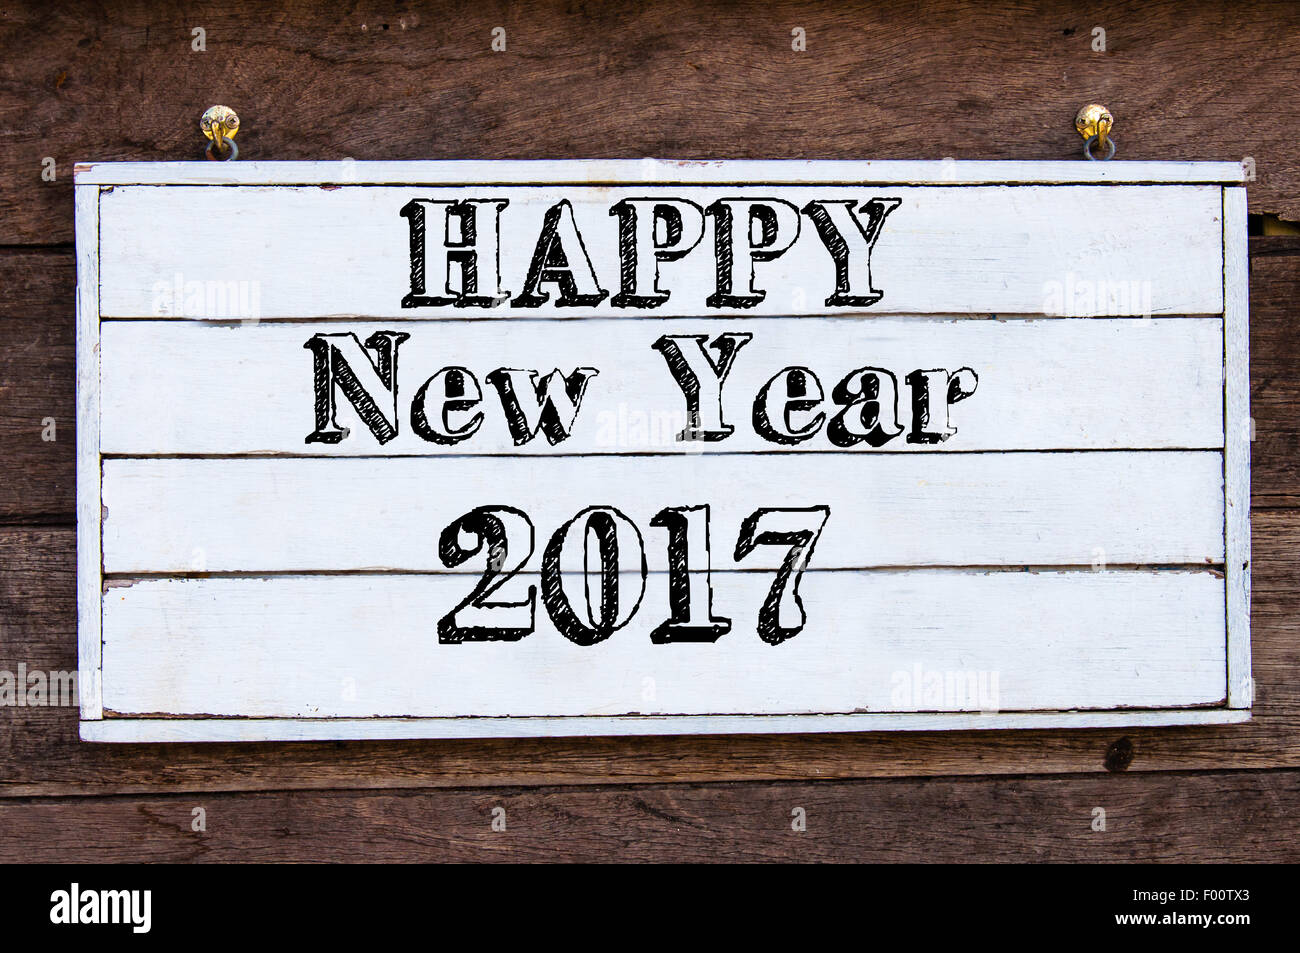 Happy New Year 2017 Inspirational message written on vintage wooden ...